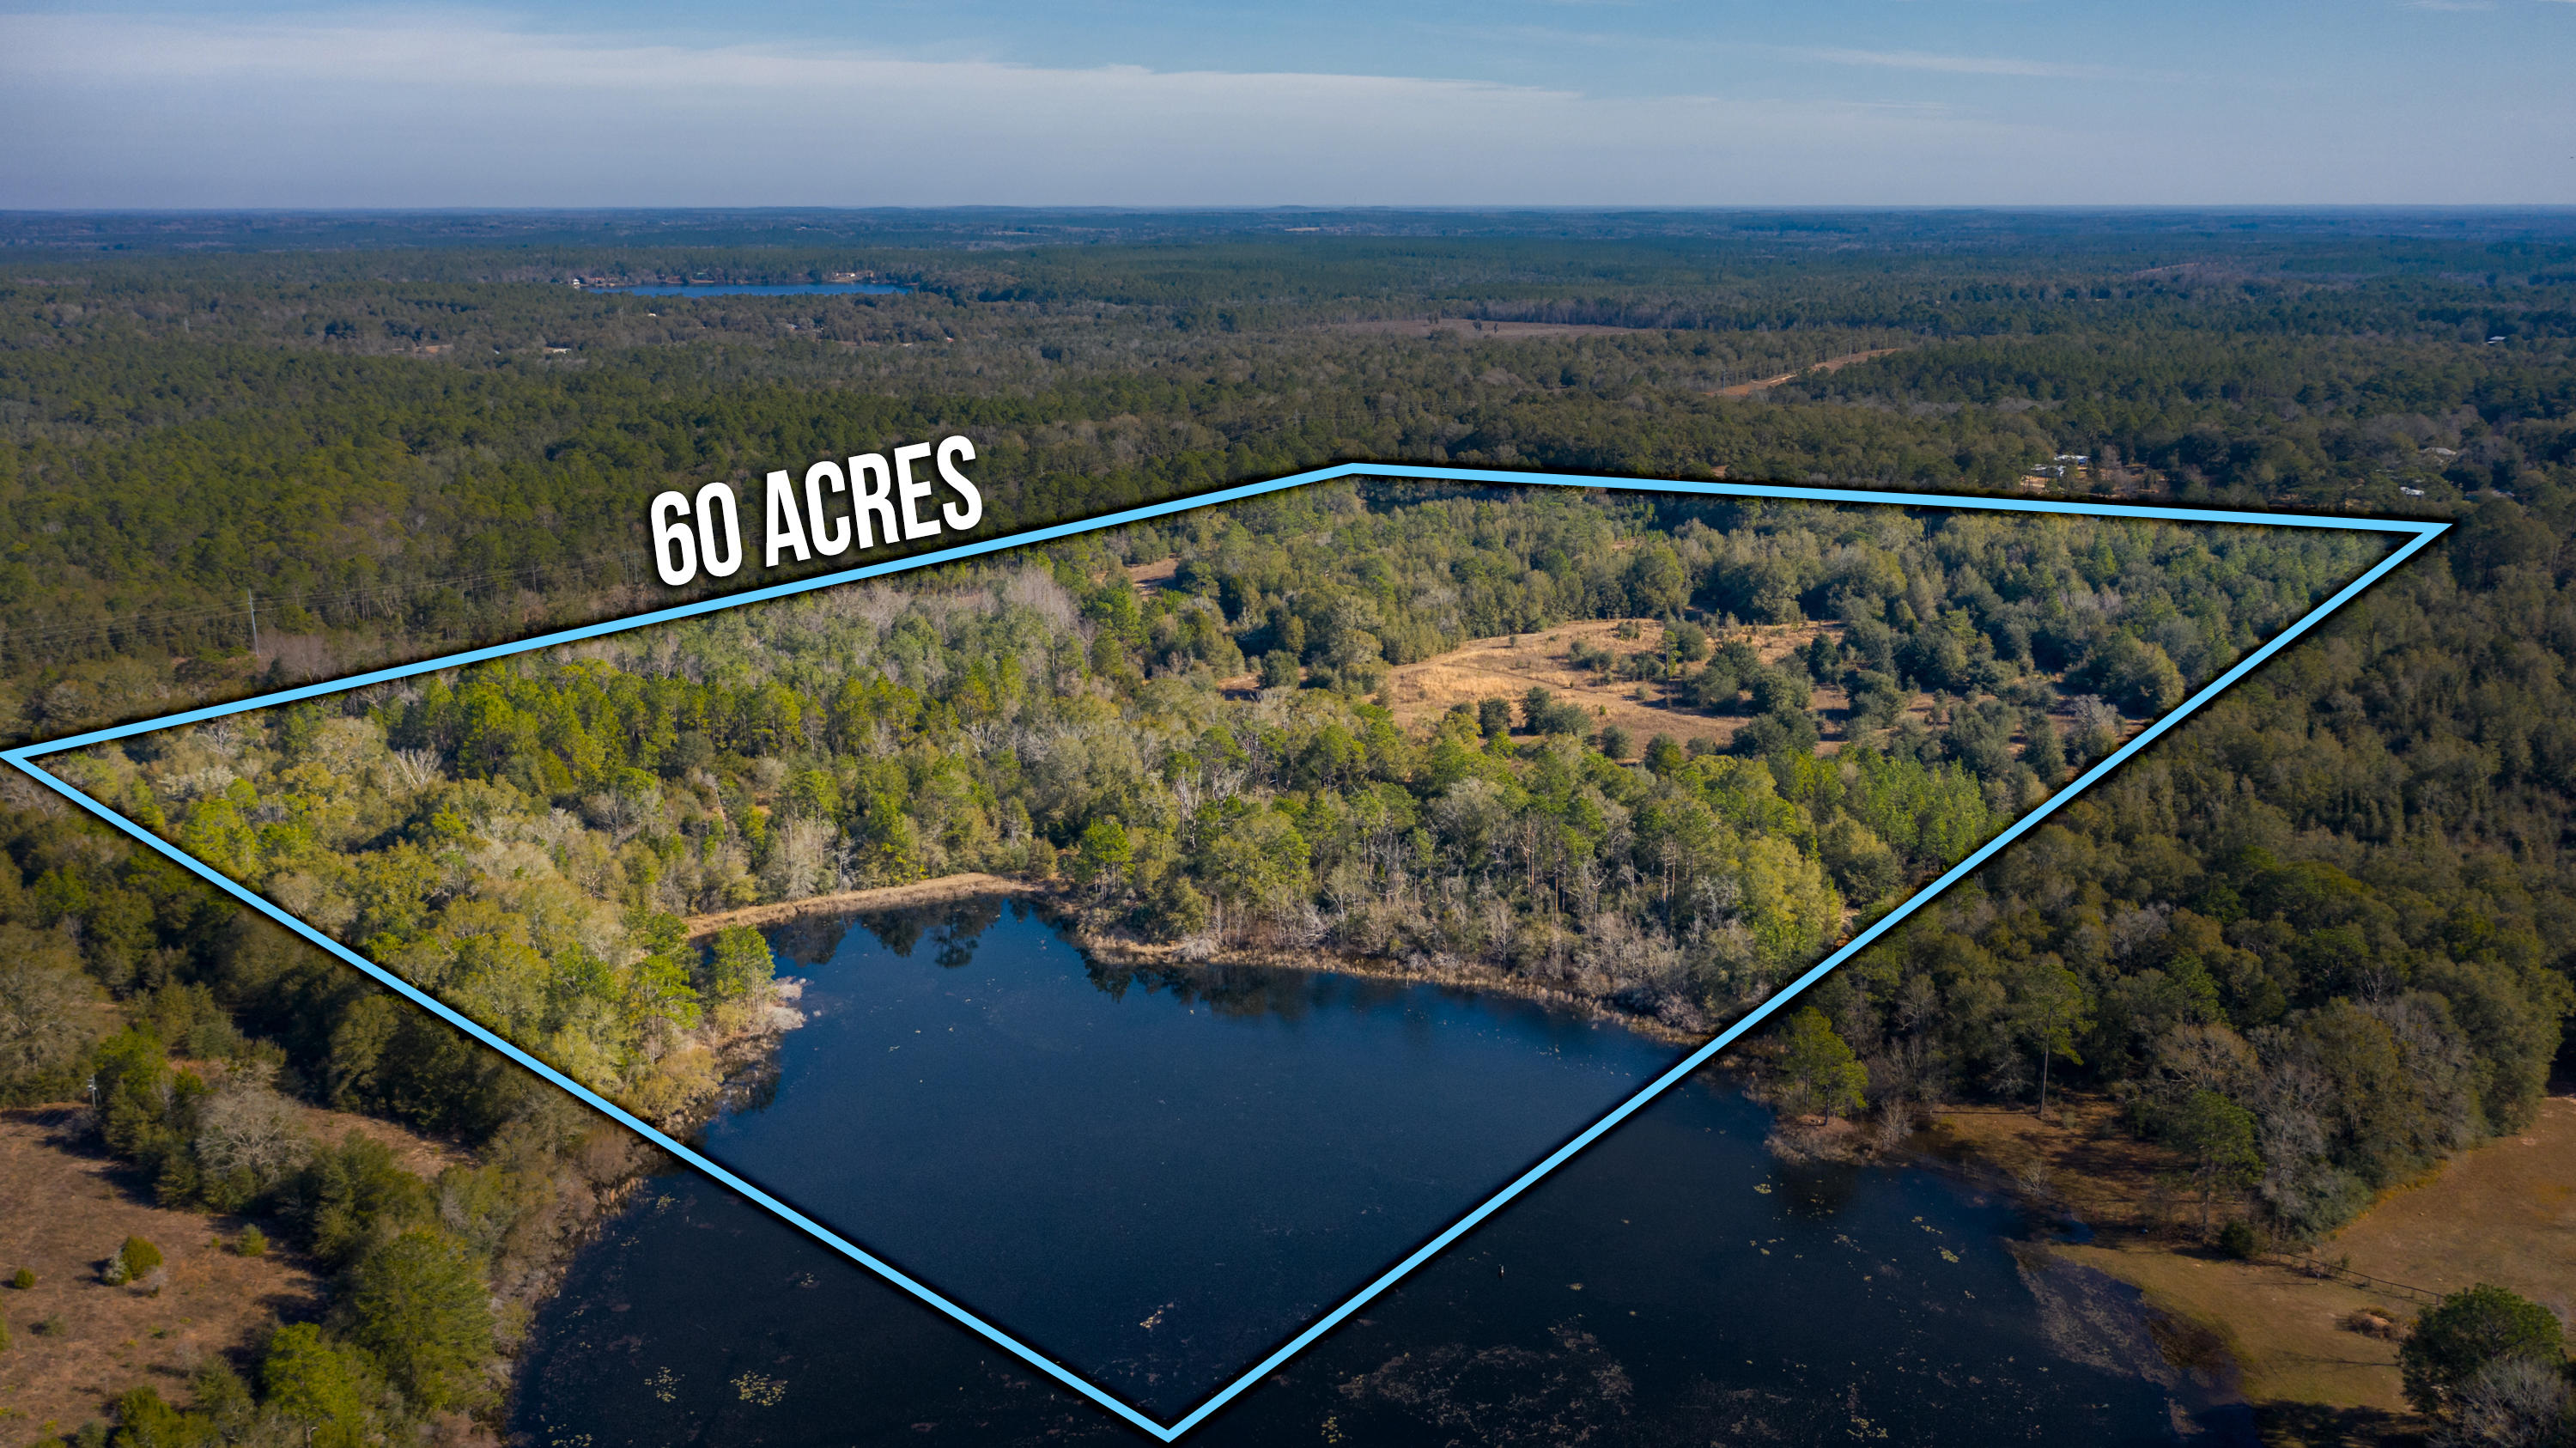 This is the perfect sized parcel with many uses. It has a Duck pond, a Lake, natural timber and Some large Oak trees that would make a great homesite. This property also has a residential zoning for future development. This property is home to an abundance of wildlife including Deer, Turkeys, and Ducks.